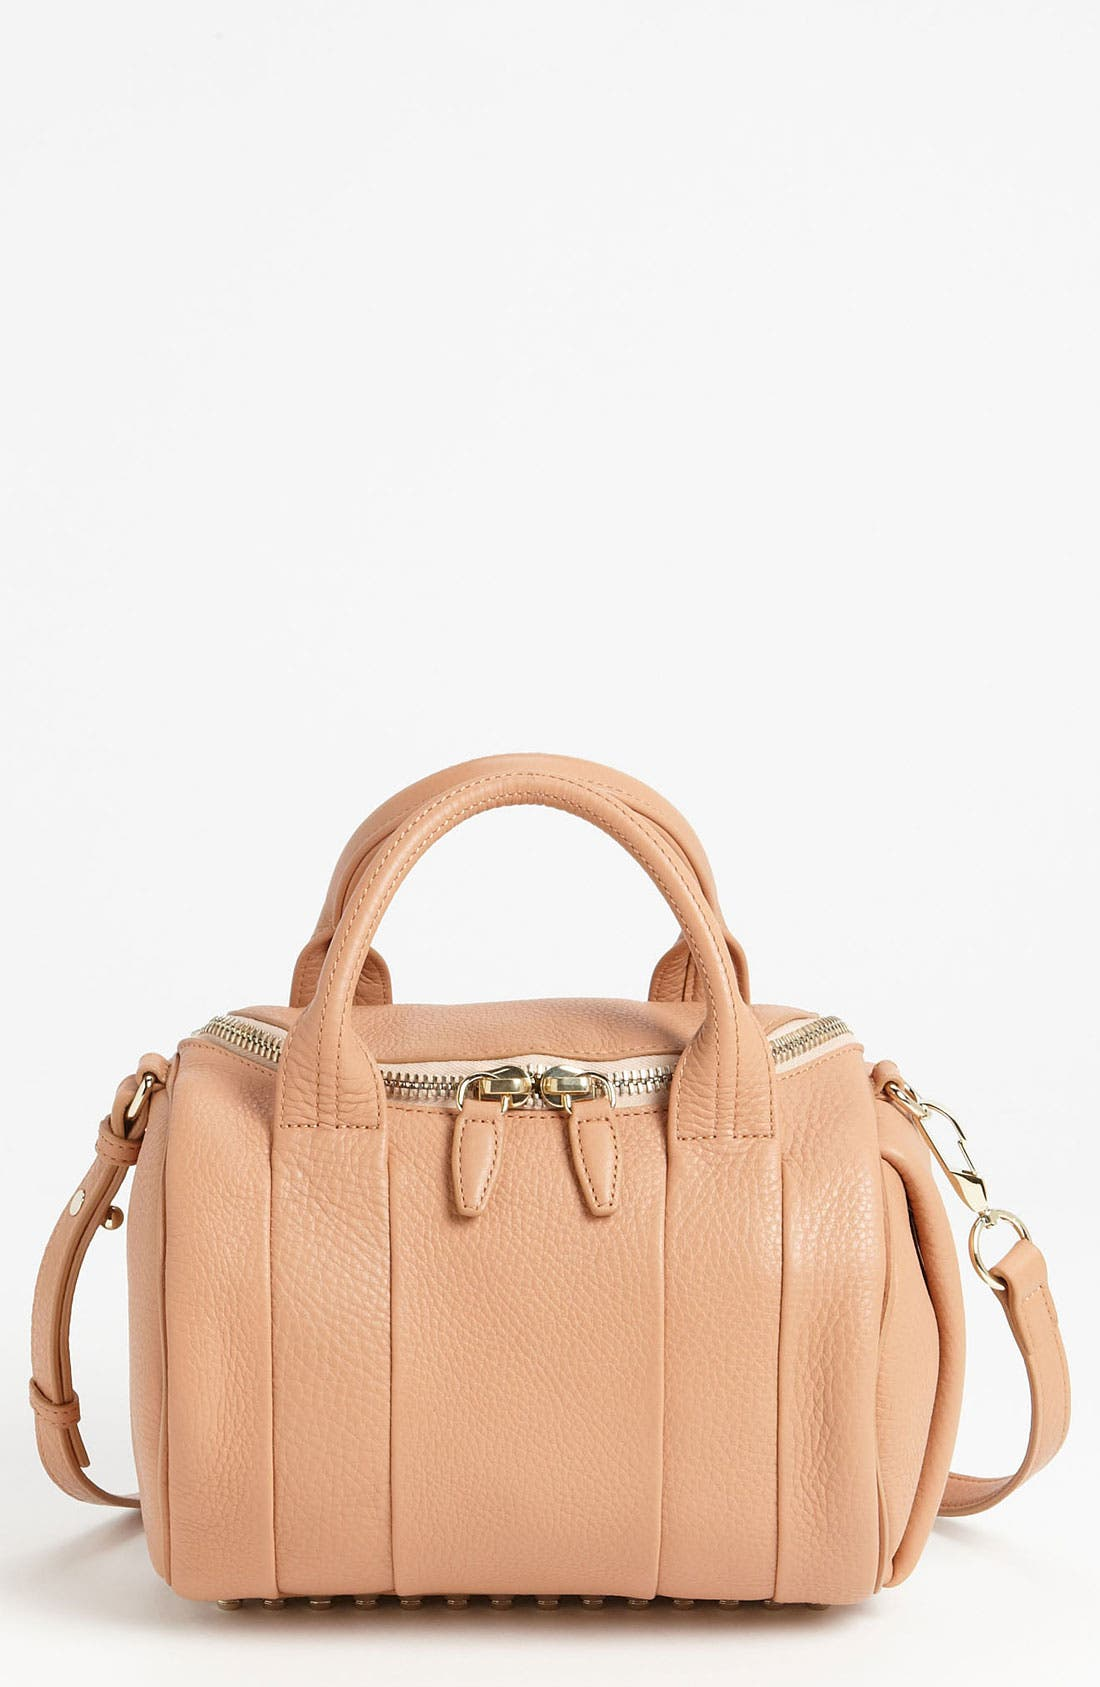 Main Image - Alexander Wang 'Rockie - Pale Gold' Leather Crossbody Satchel